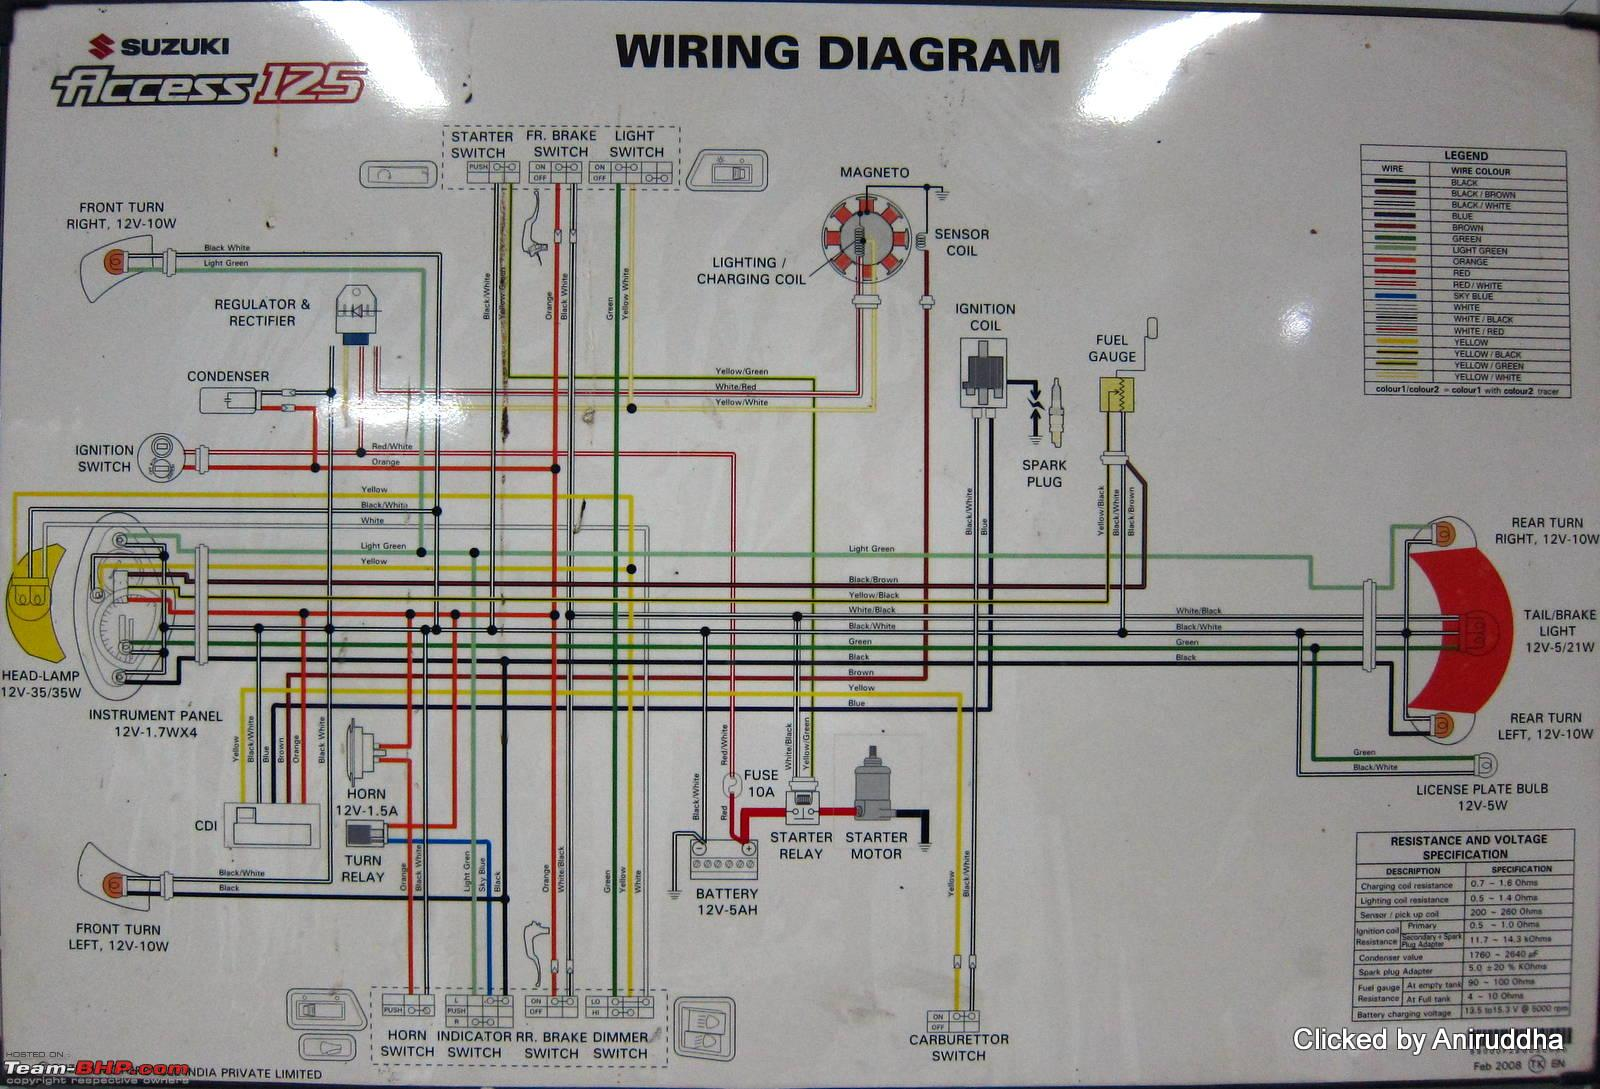 suzuki access wiring diagram suzuki wiring diagrams online circuit diagrams of n motorcycles and scooters team bhp